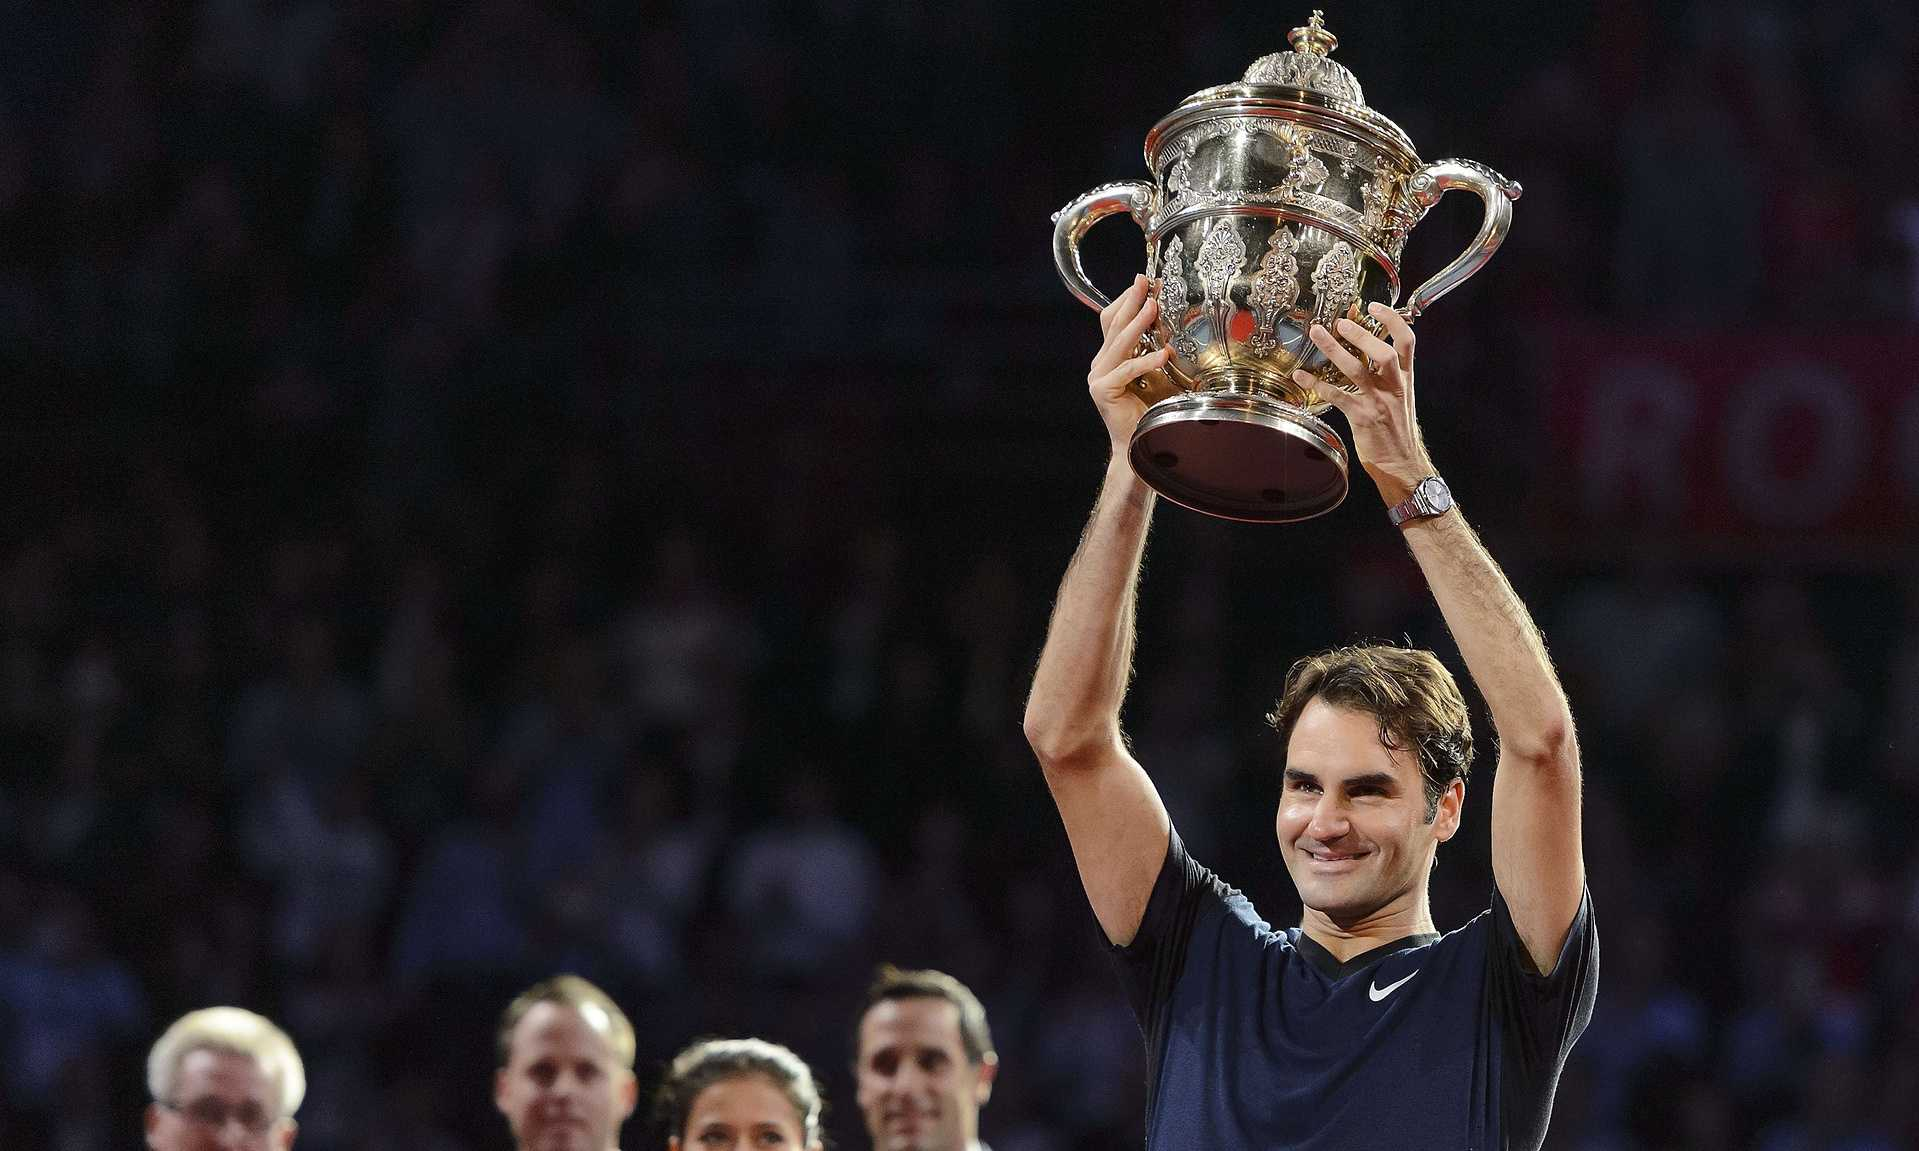 Roger Federer: Tennis Player Defeats Rafael Nadal in Swiss Indoors Basel Final to Win 6th Title of 2015